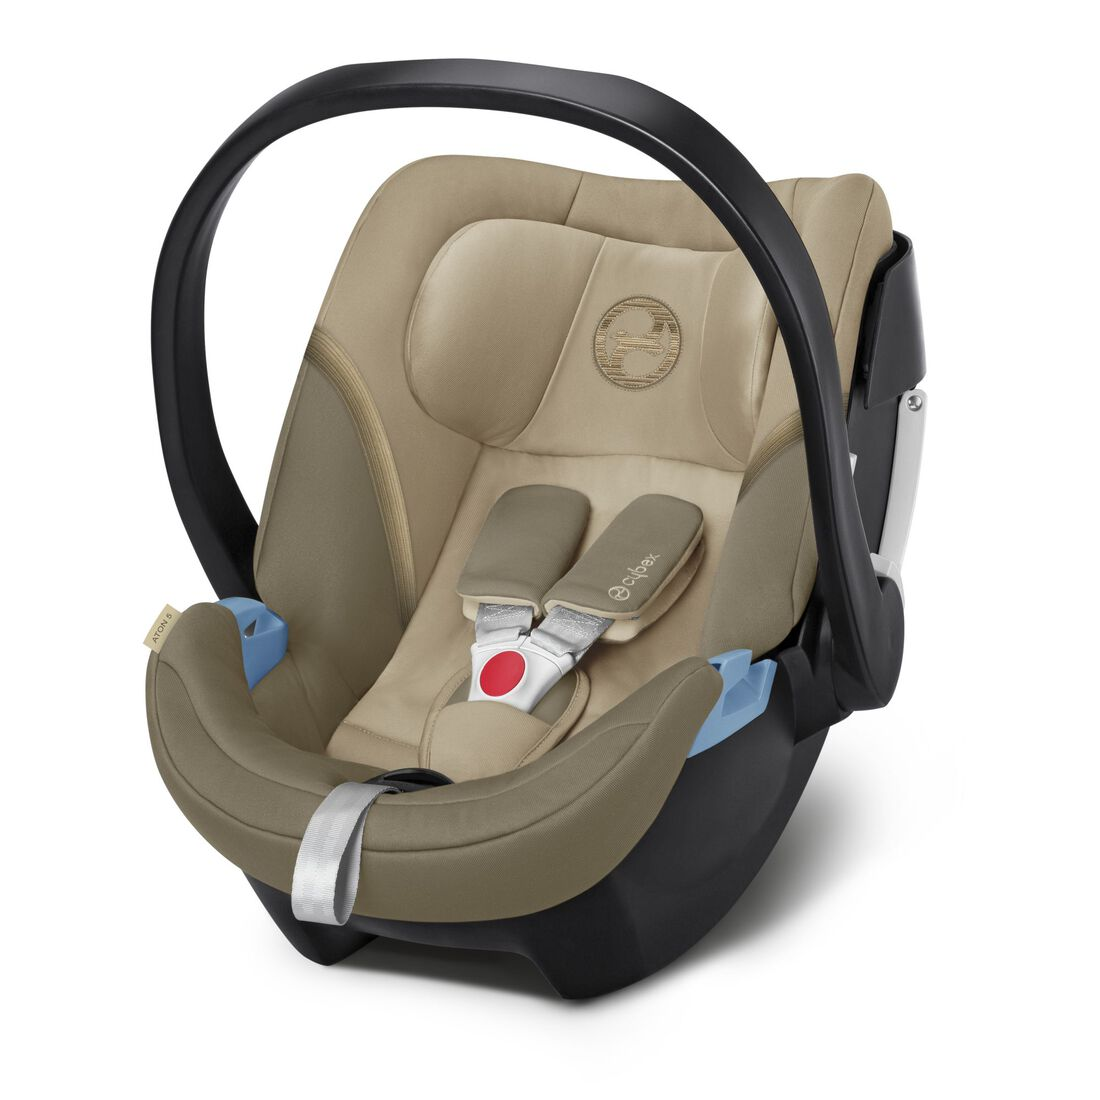 CYBEX Aton 5 - Classic Beige in Classic Beige large image number 1